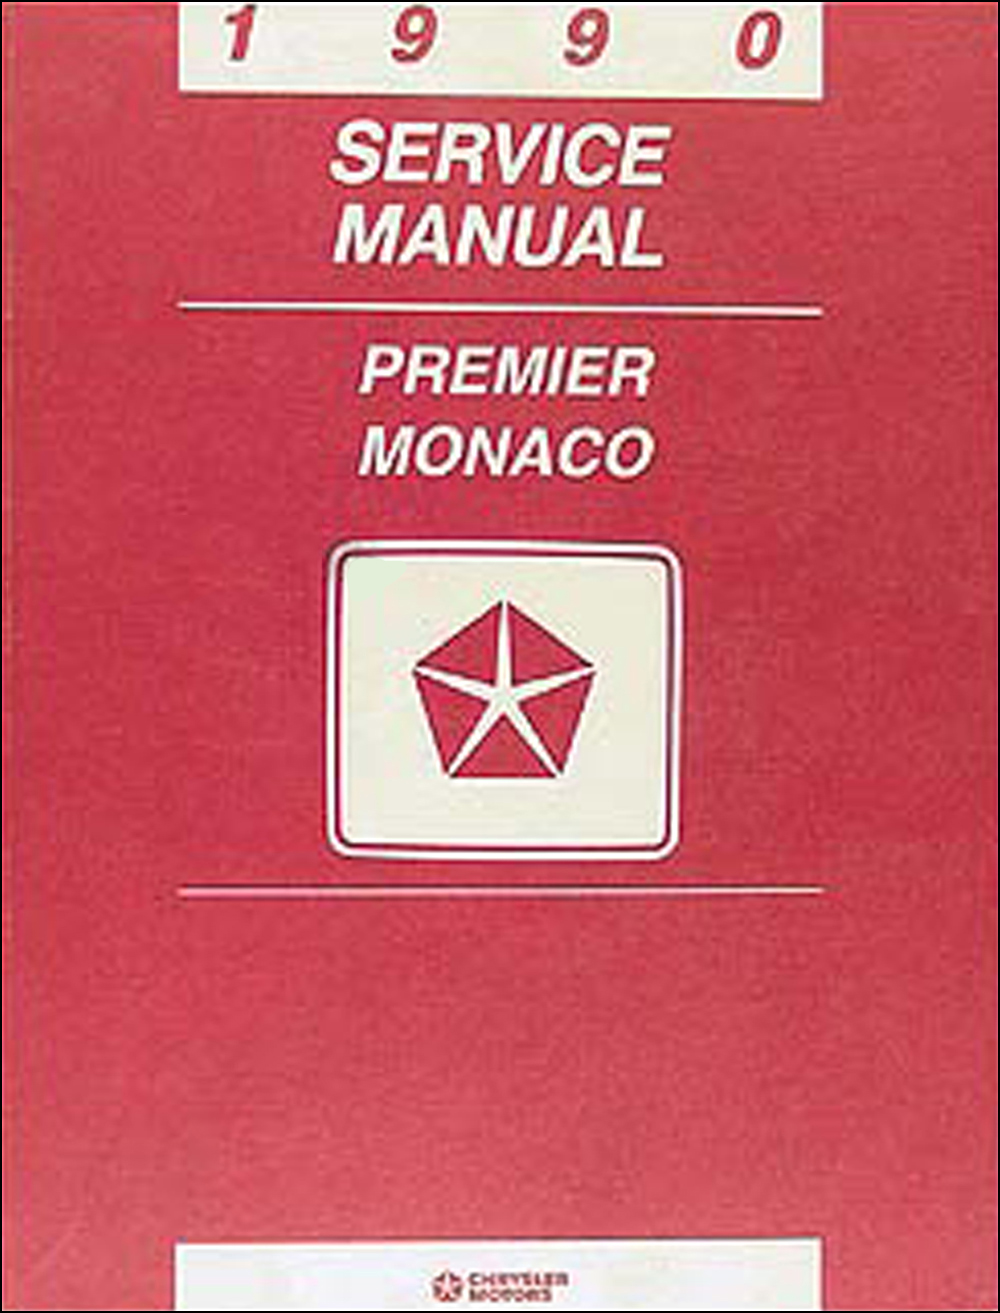 1990 Dodge Monaco & Eagle Premier Shop Manual Original